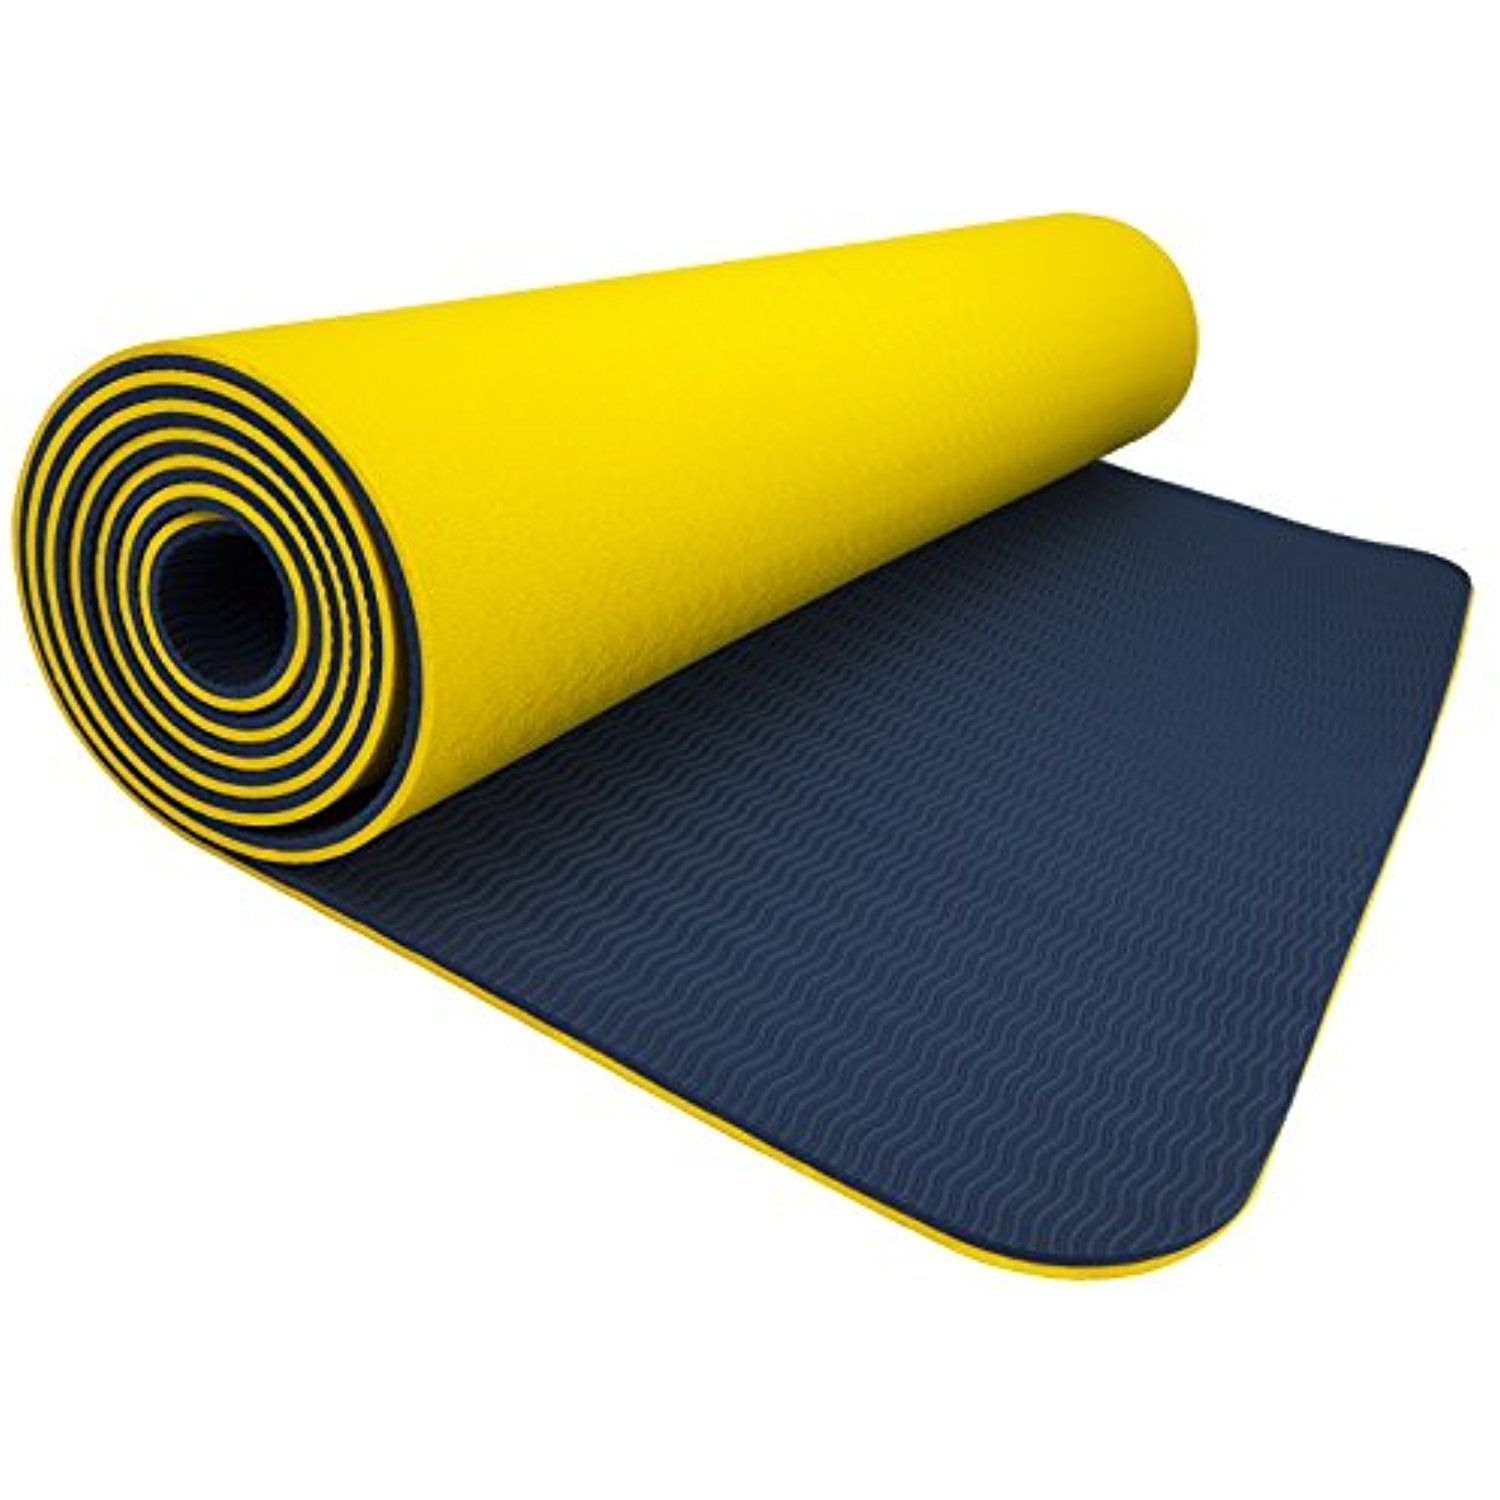 buy workout yoga gym up picnic roll mat carry physio camping fitness out poses with pilates festivals sleeping slip exercise shop amos non eshion thick positions work pad tent mats strap